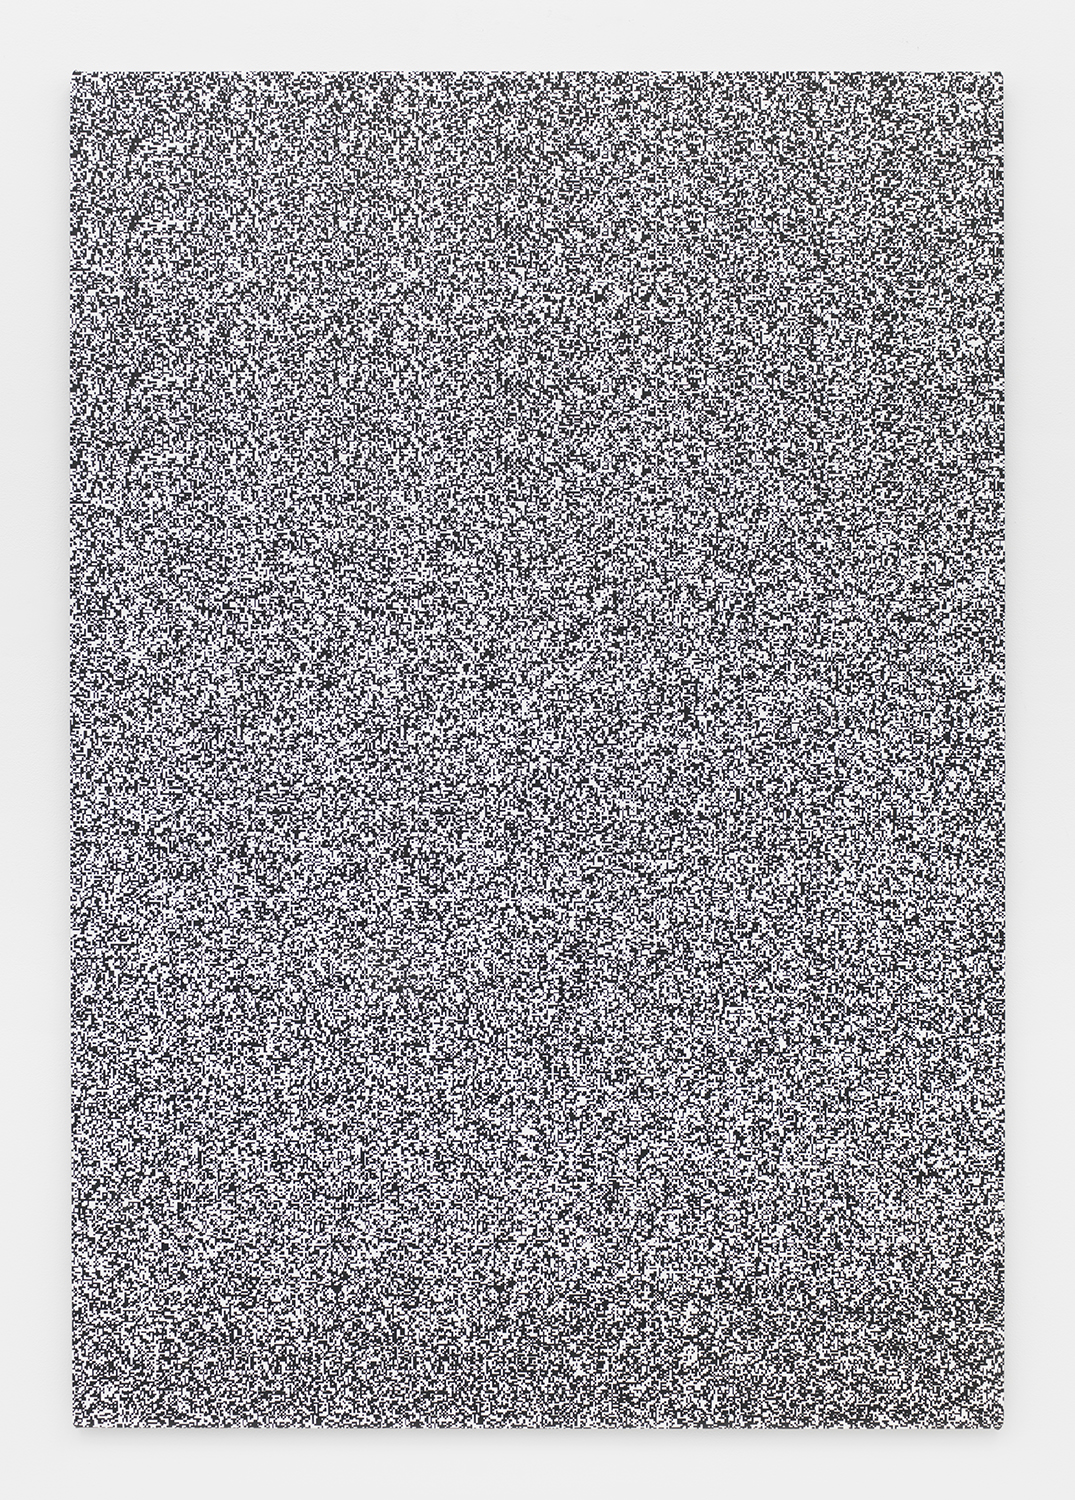 Haley Mellin  Untitled 095 , 2014 Ink, oil and gesso on canvas 64 x 44 inches